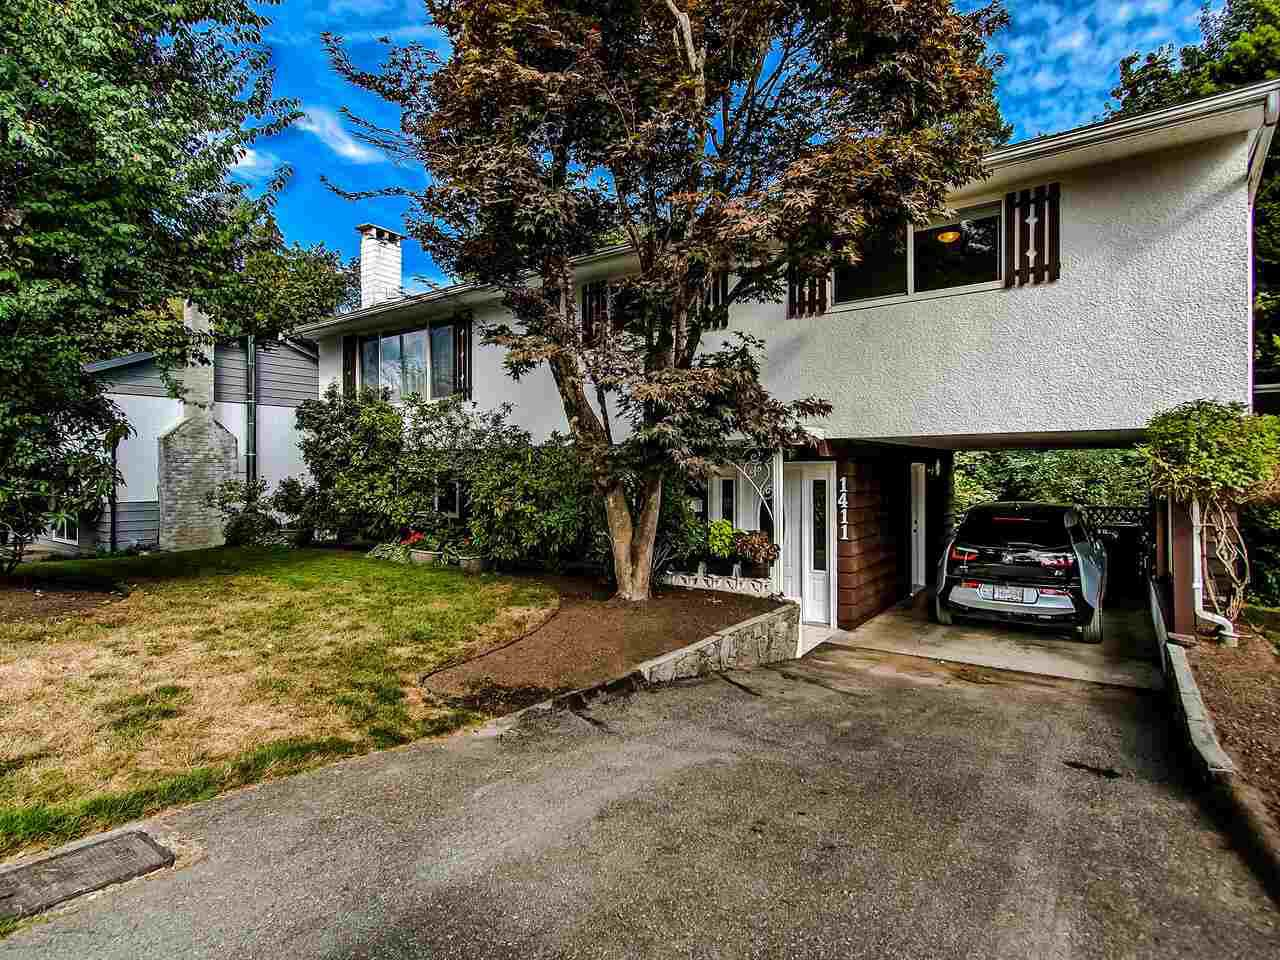 Main Photo: 1411 MORRISON Street in Port Coquitlam: Lower Mary Hill House for sale : MLS®# R2501153